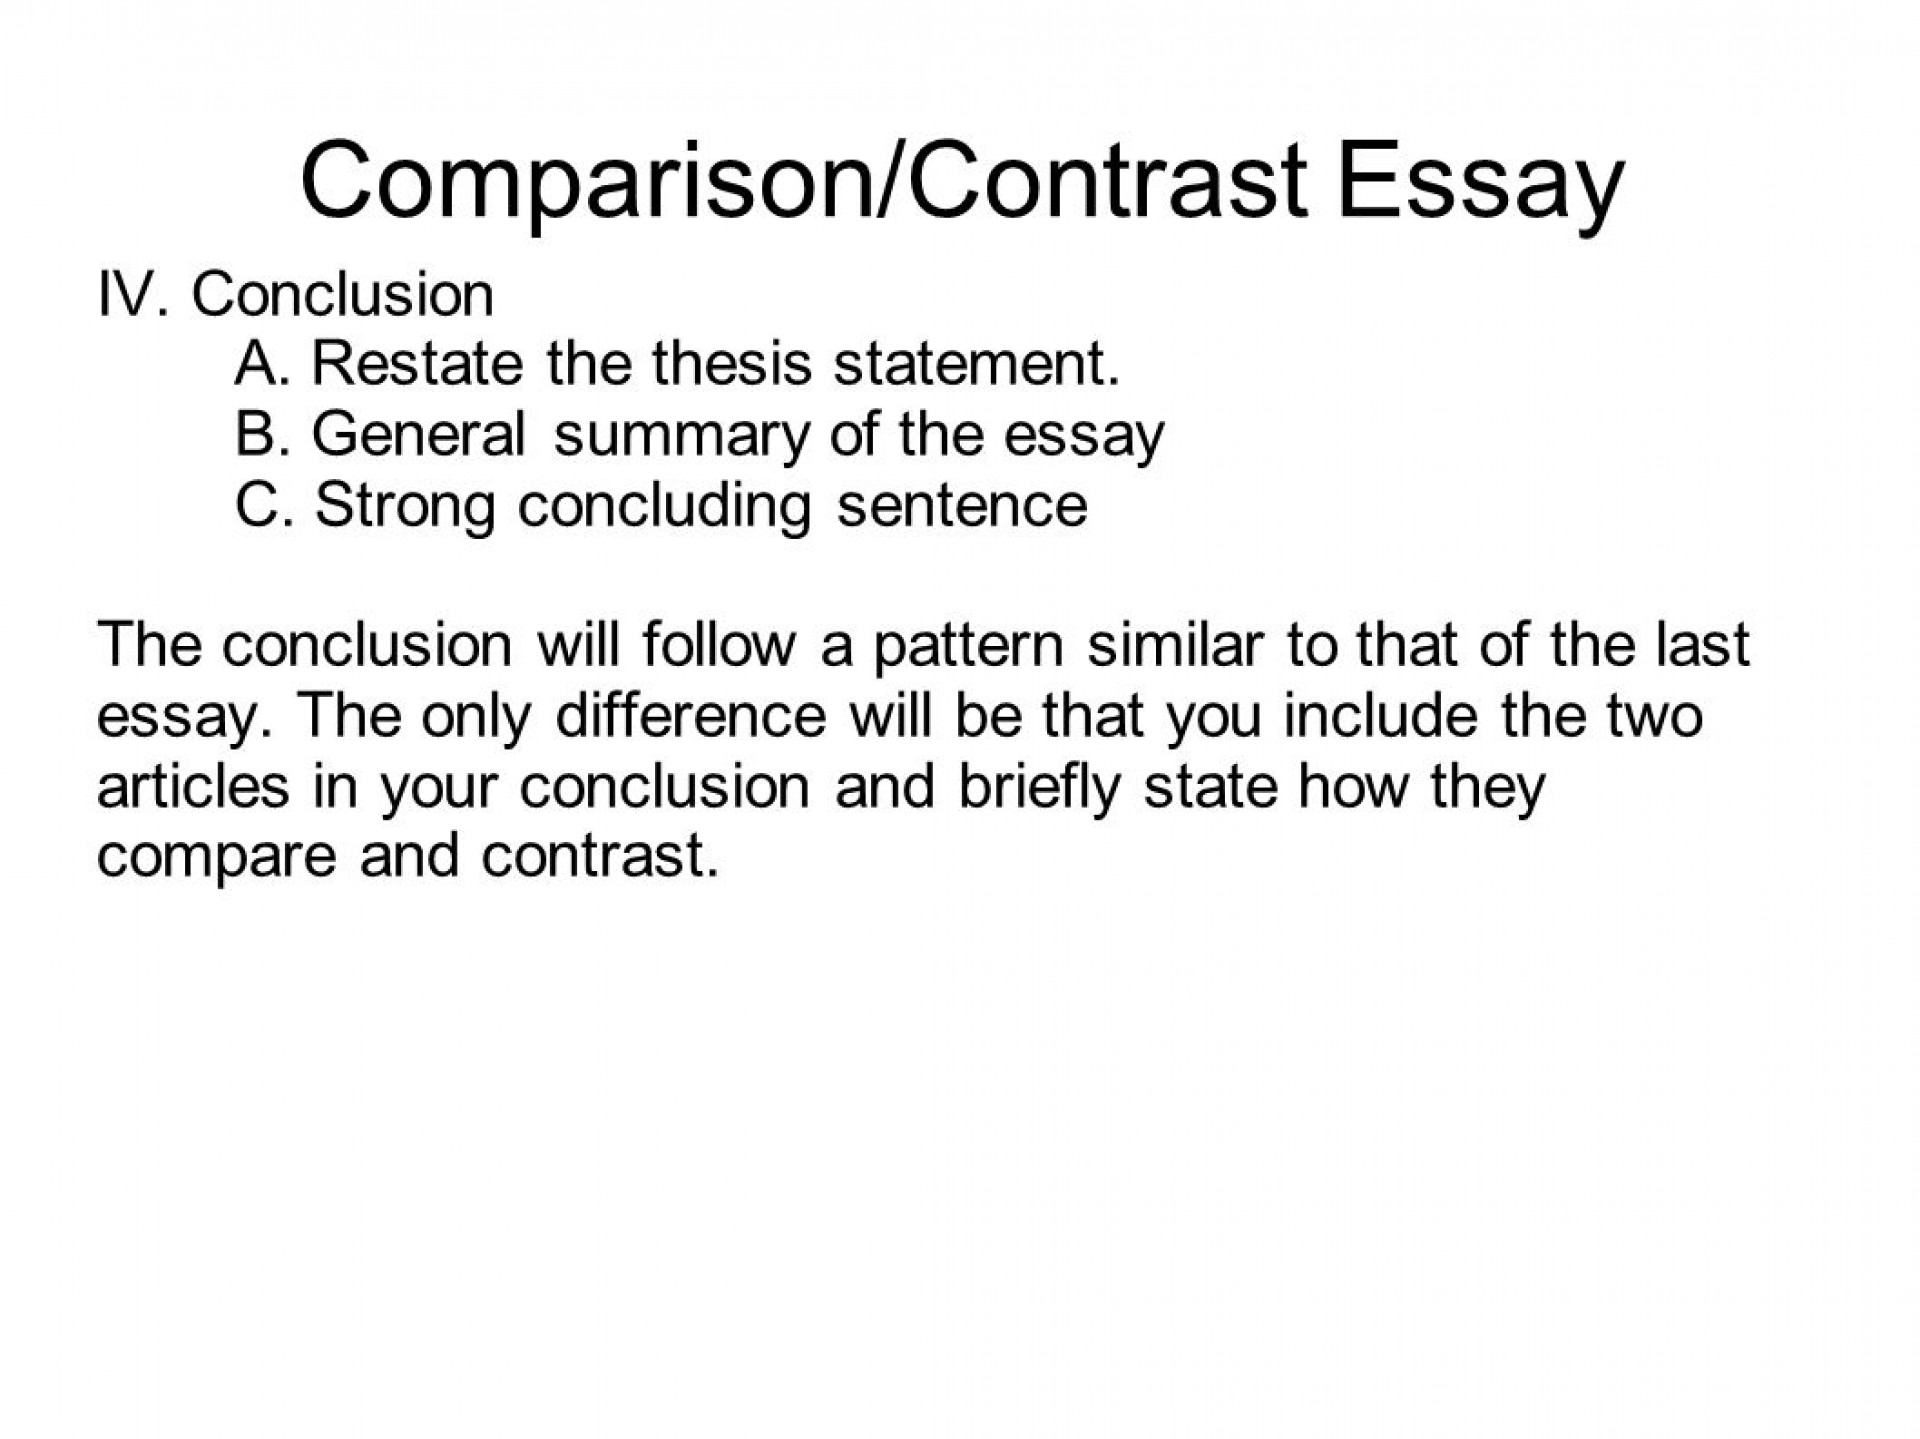 010 Good Compare And Contrast Essays Conclusion Paragraph For How To Write An Essay Sli Analysis Argumentative Art Academic Informative Sentence Opinion Unbelievable Title Generator Examples High School Titles 1920